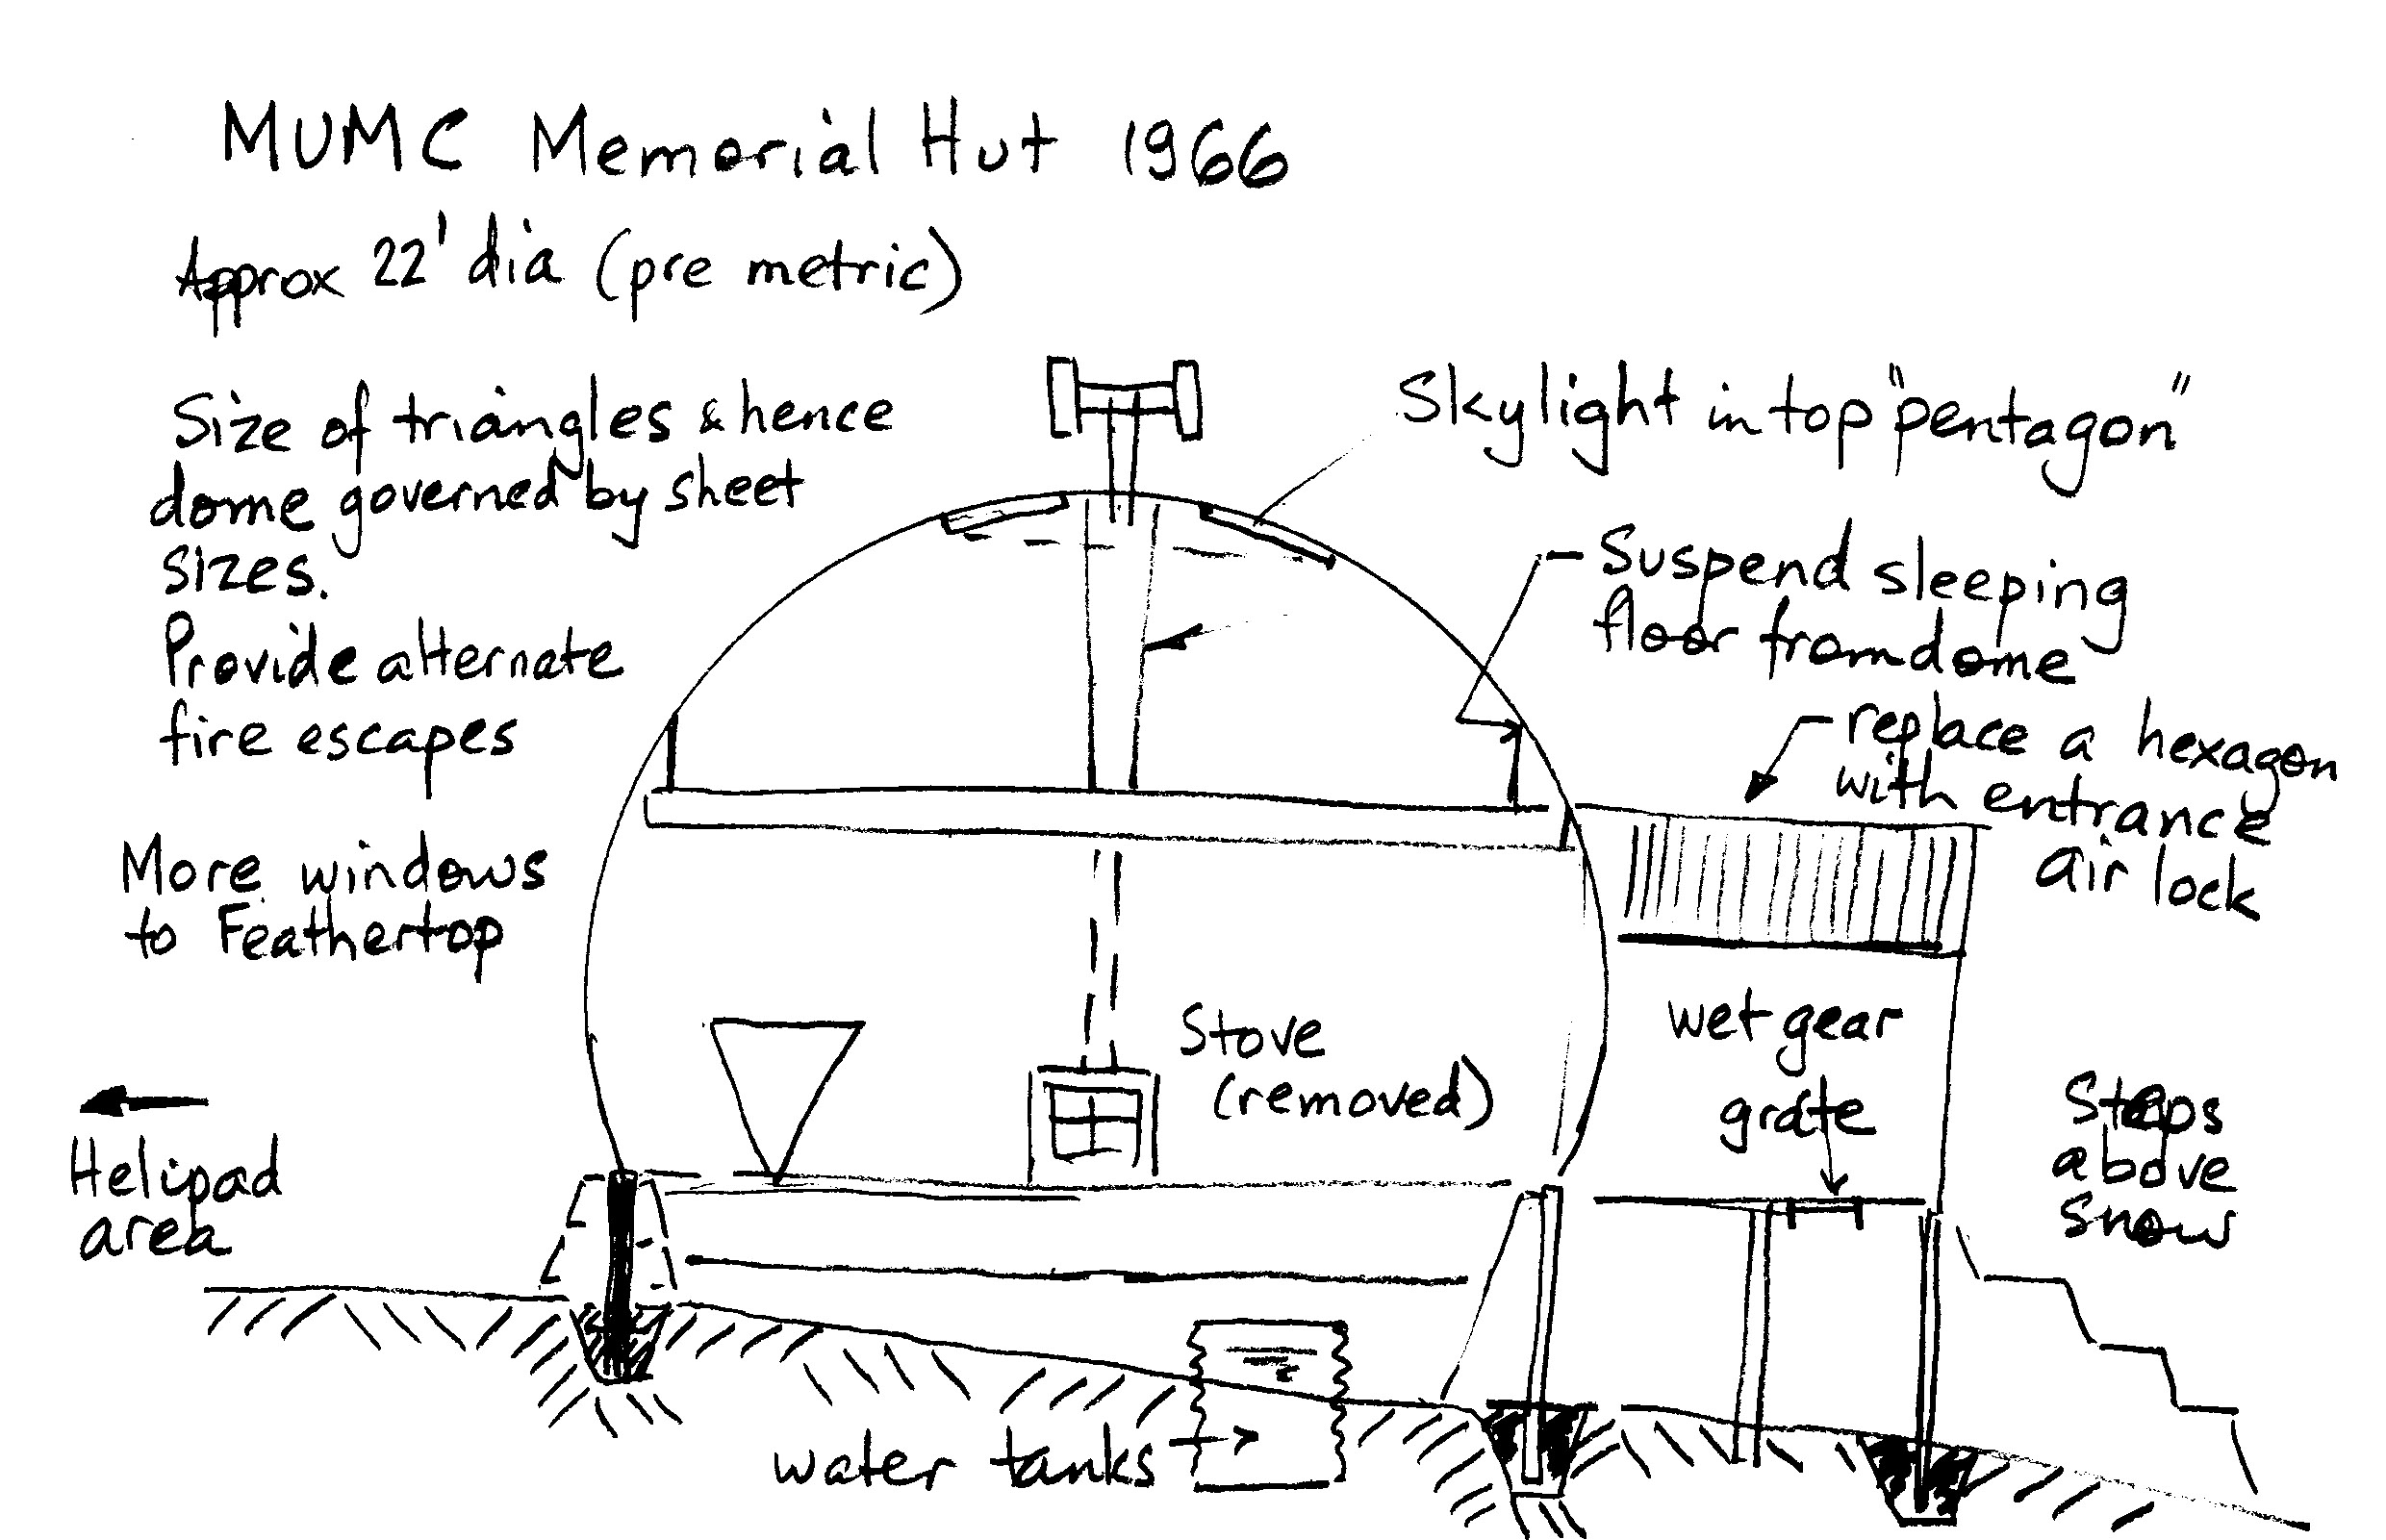 Peter Kneen's sketched cross section gives more of a feel for the design of MUMC Hut than the Butler floor plan.